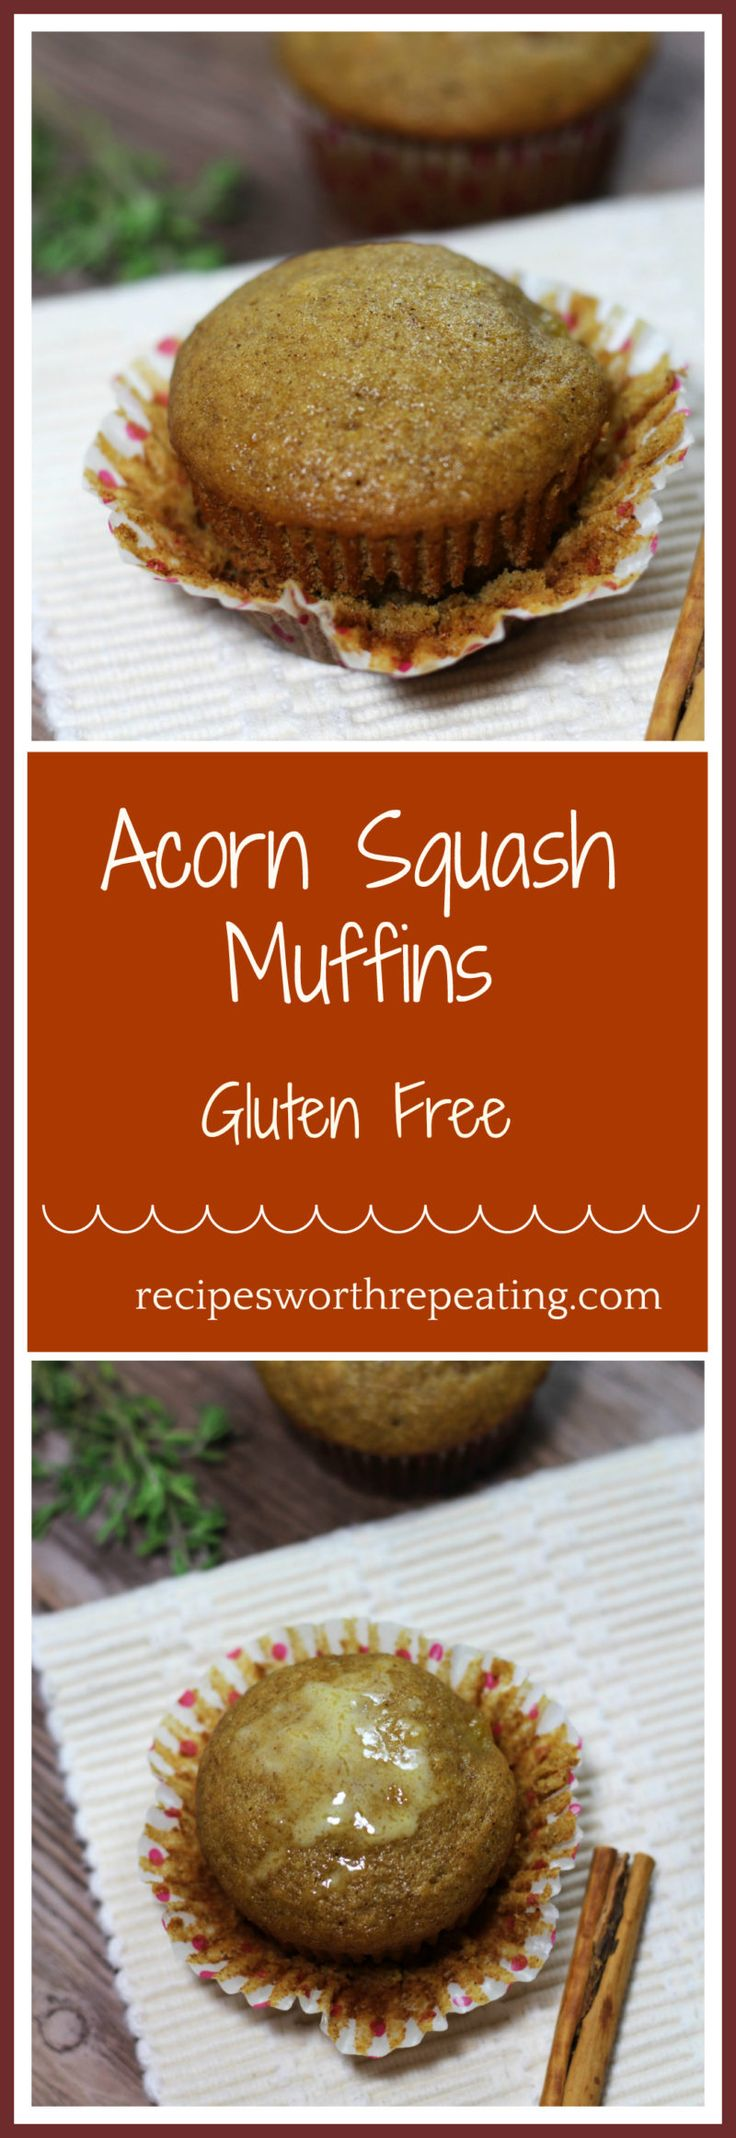 These Acorn Squash Muffins are gluten free and scream all things fall flavor! Made with acorn squash puree, these muffins have the perfect flavor if cinnamon, nutmeg and clove!